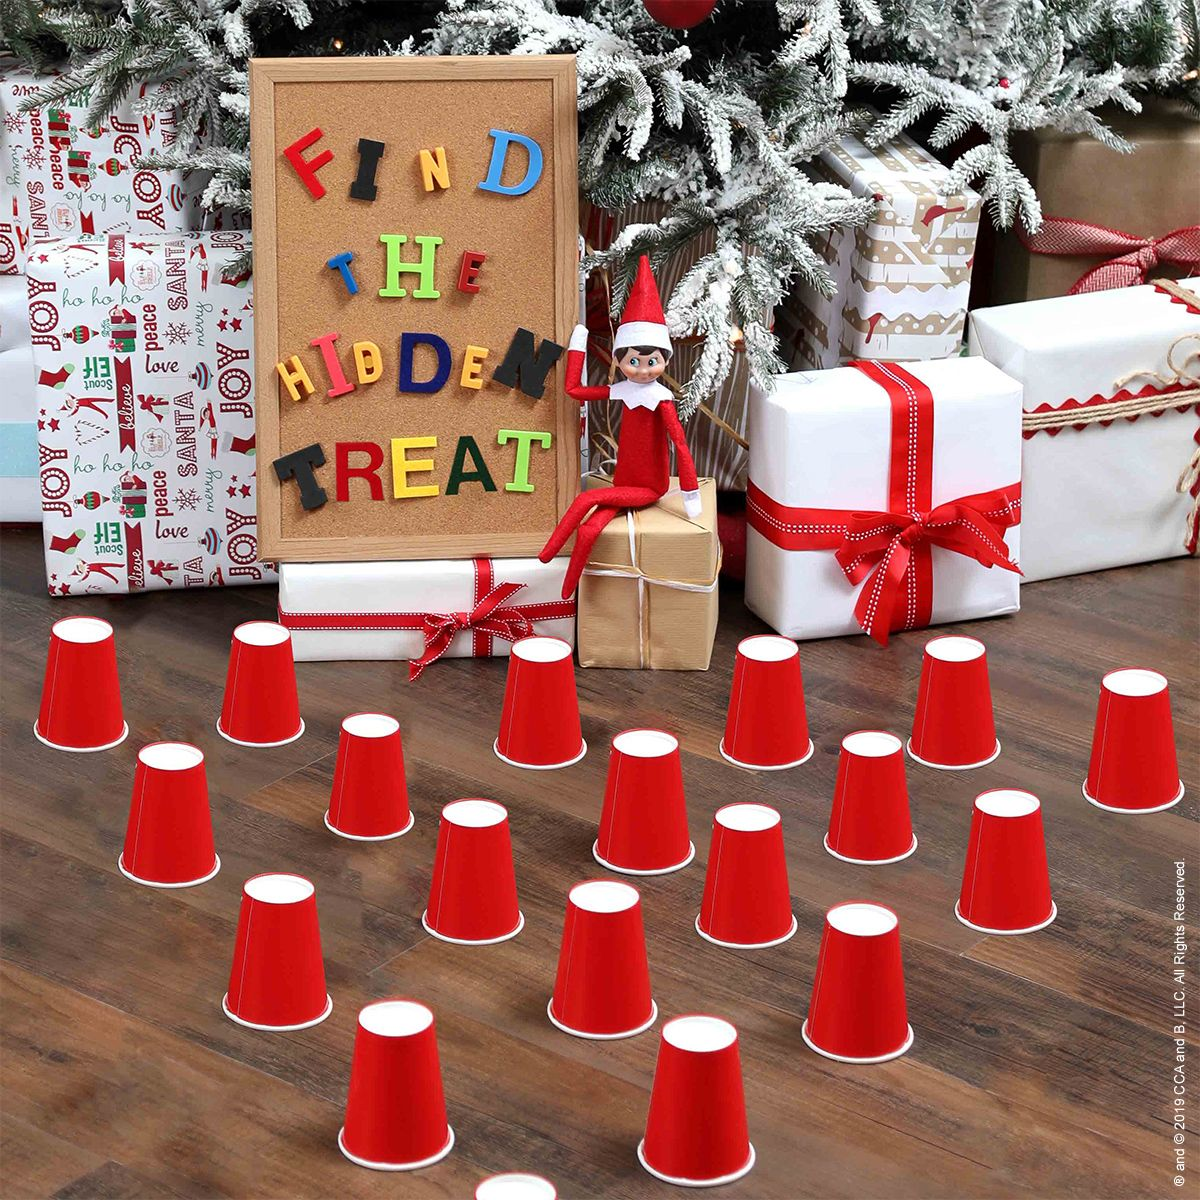 Scout Elf Ideas | Easy & Quick Elf Ideas | The Elf on the Shelf